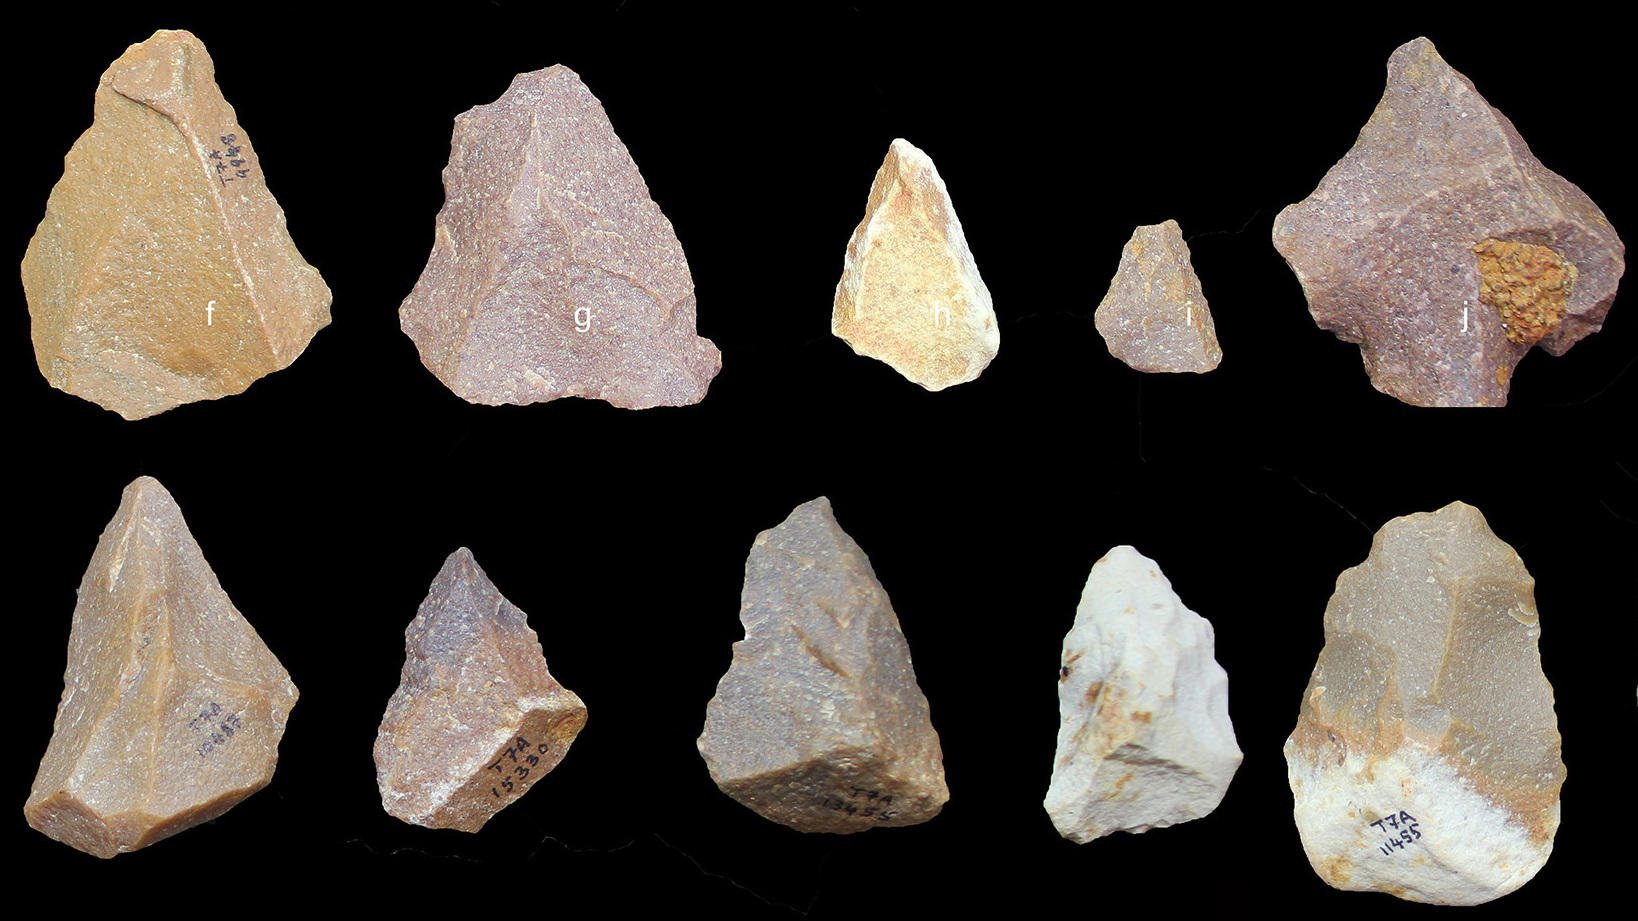 Discovery In India Suggests An Early Global Spread Of Stone Age